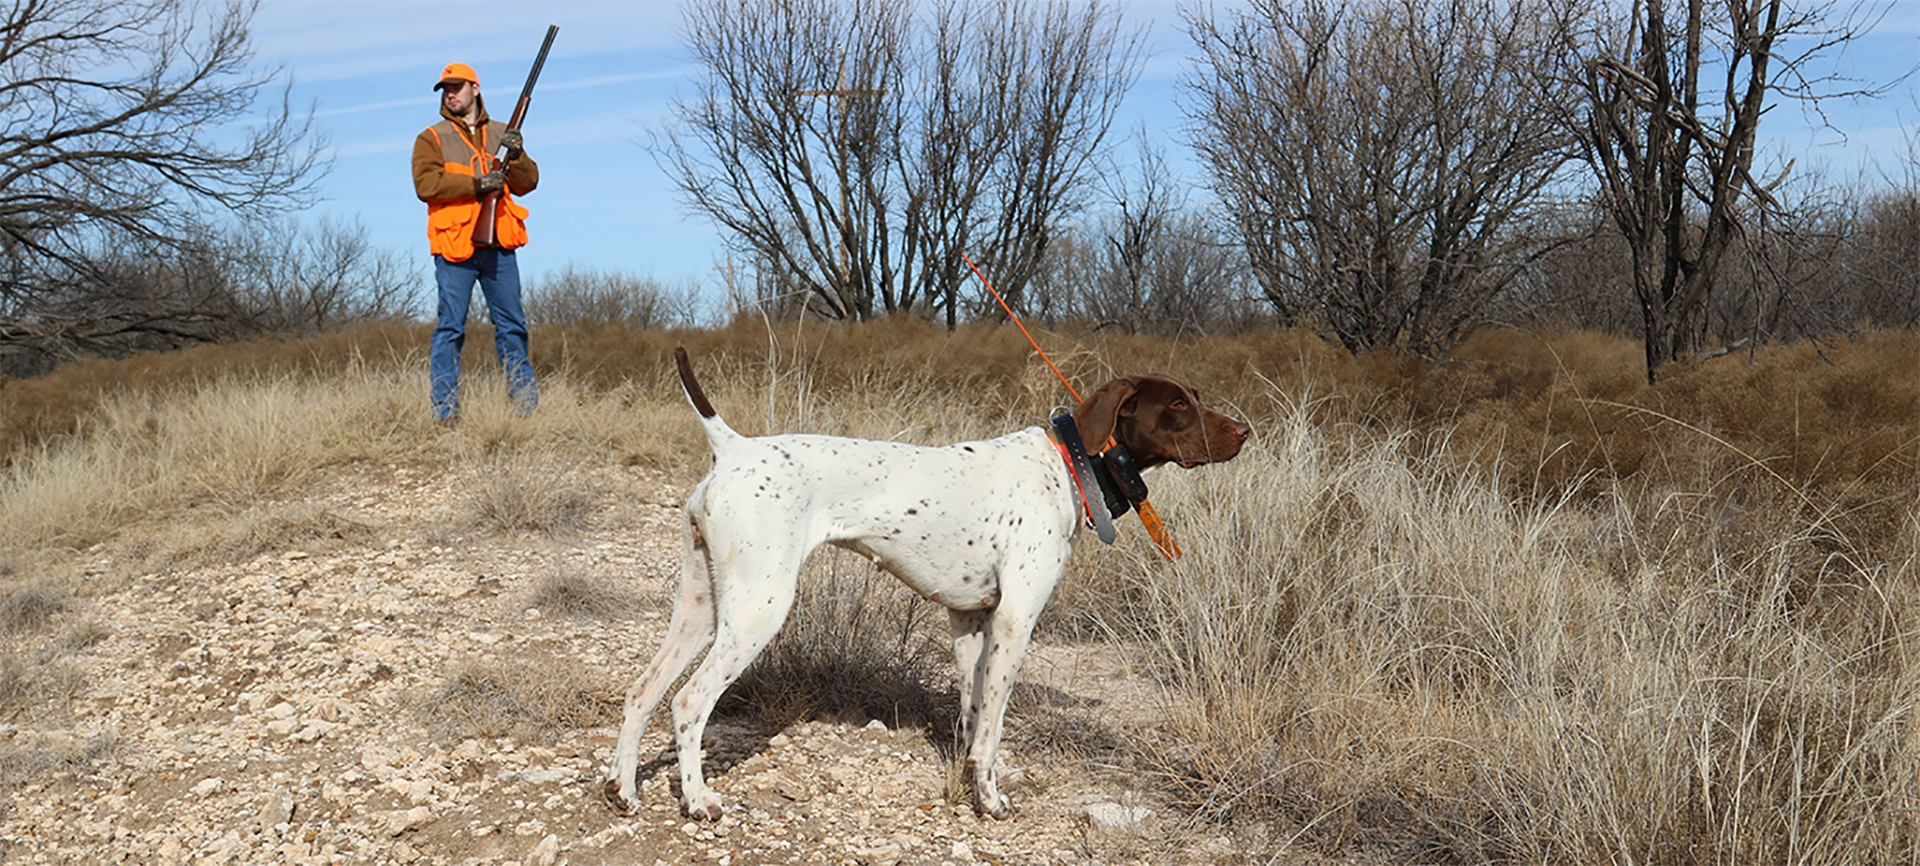 Guided Upland Hunts in Texas